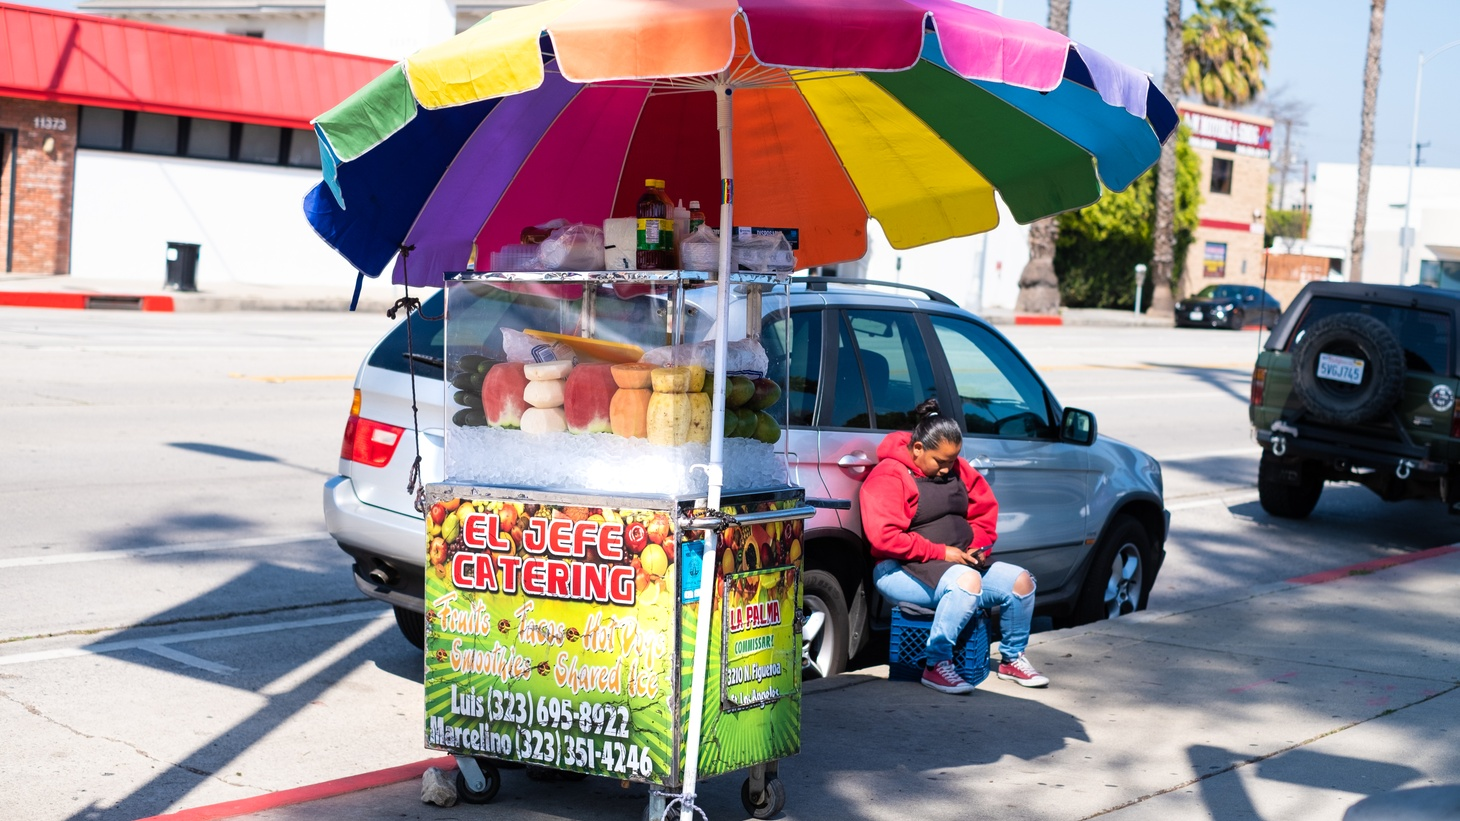 A fruit vendor waits for customers in Culver City. This Friday, street vendors will be protesting across LA.